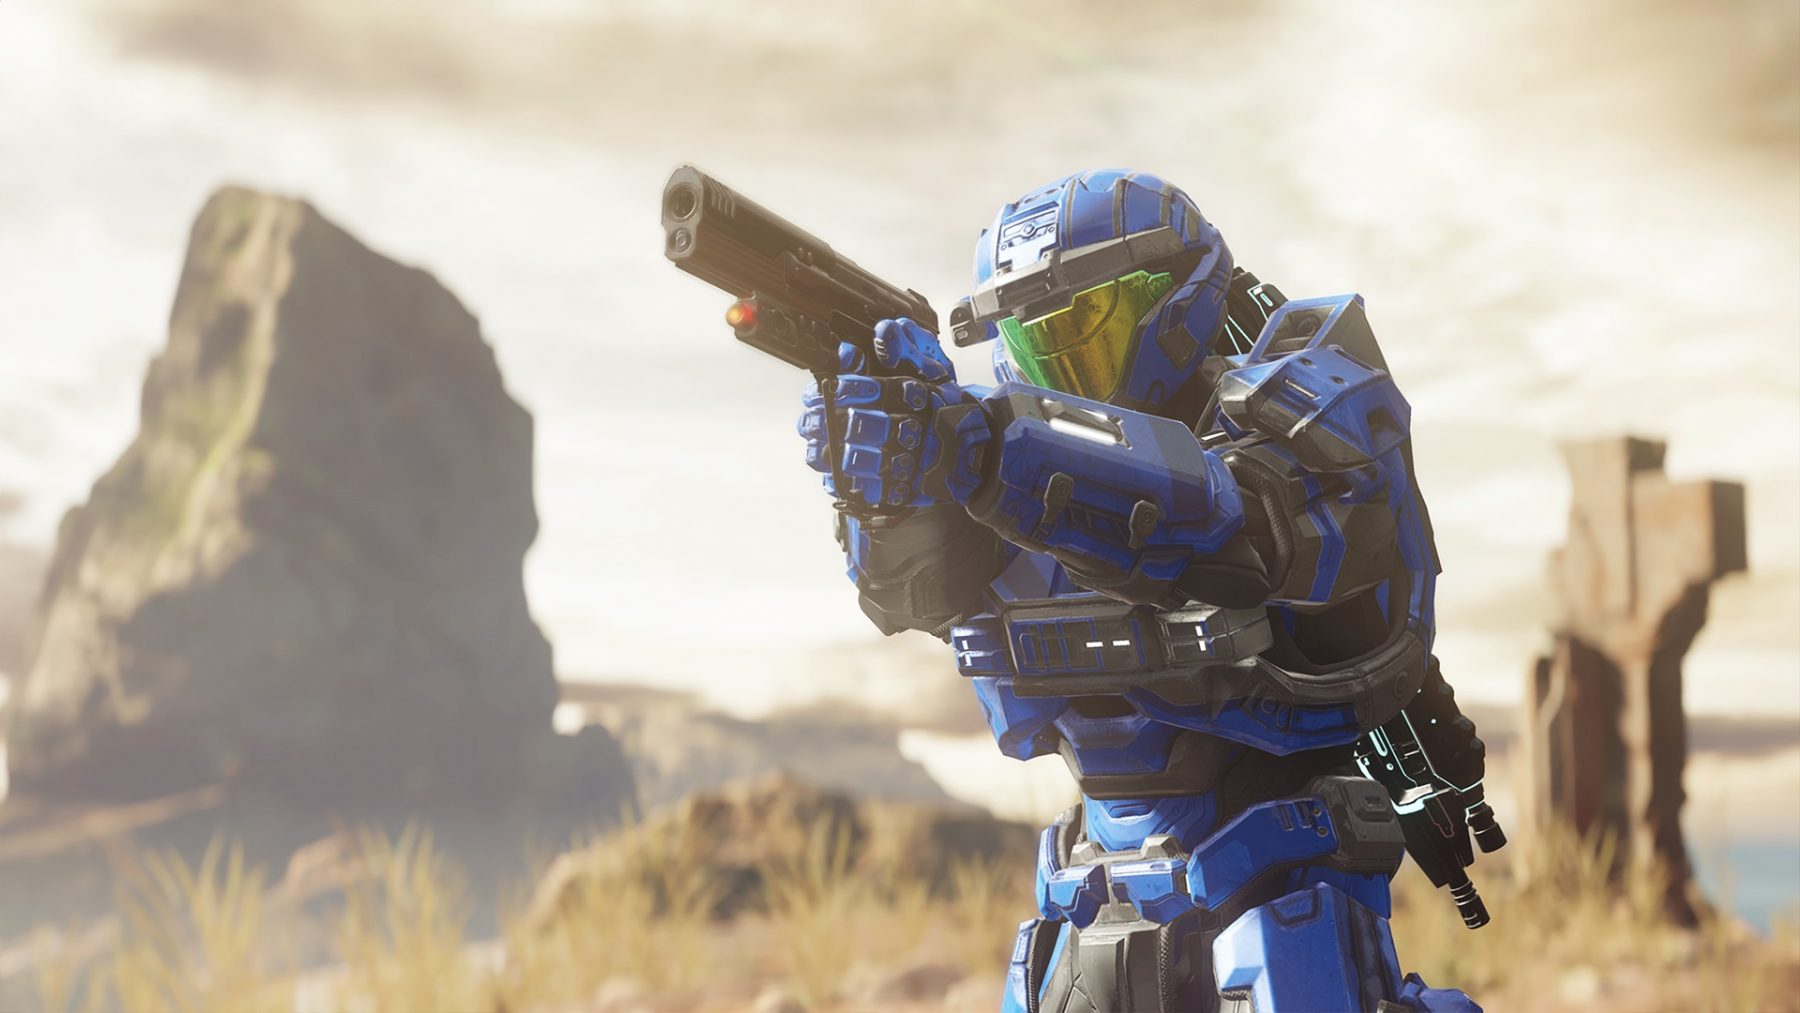 https://news.xbox.com/2016/08/24/halo-5-forge-comes-pc-september-8-anvils-legacy-content-release-revealed/